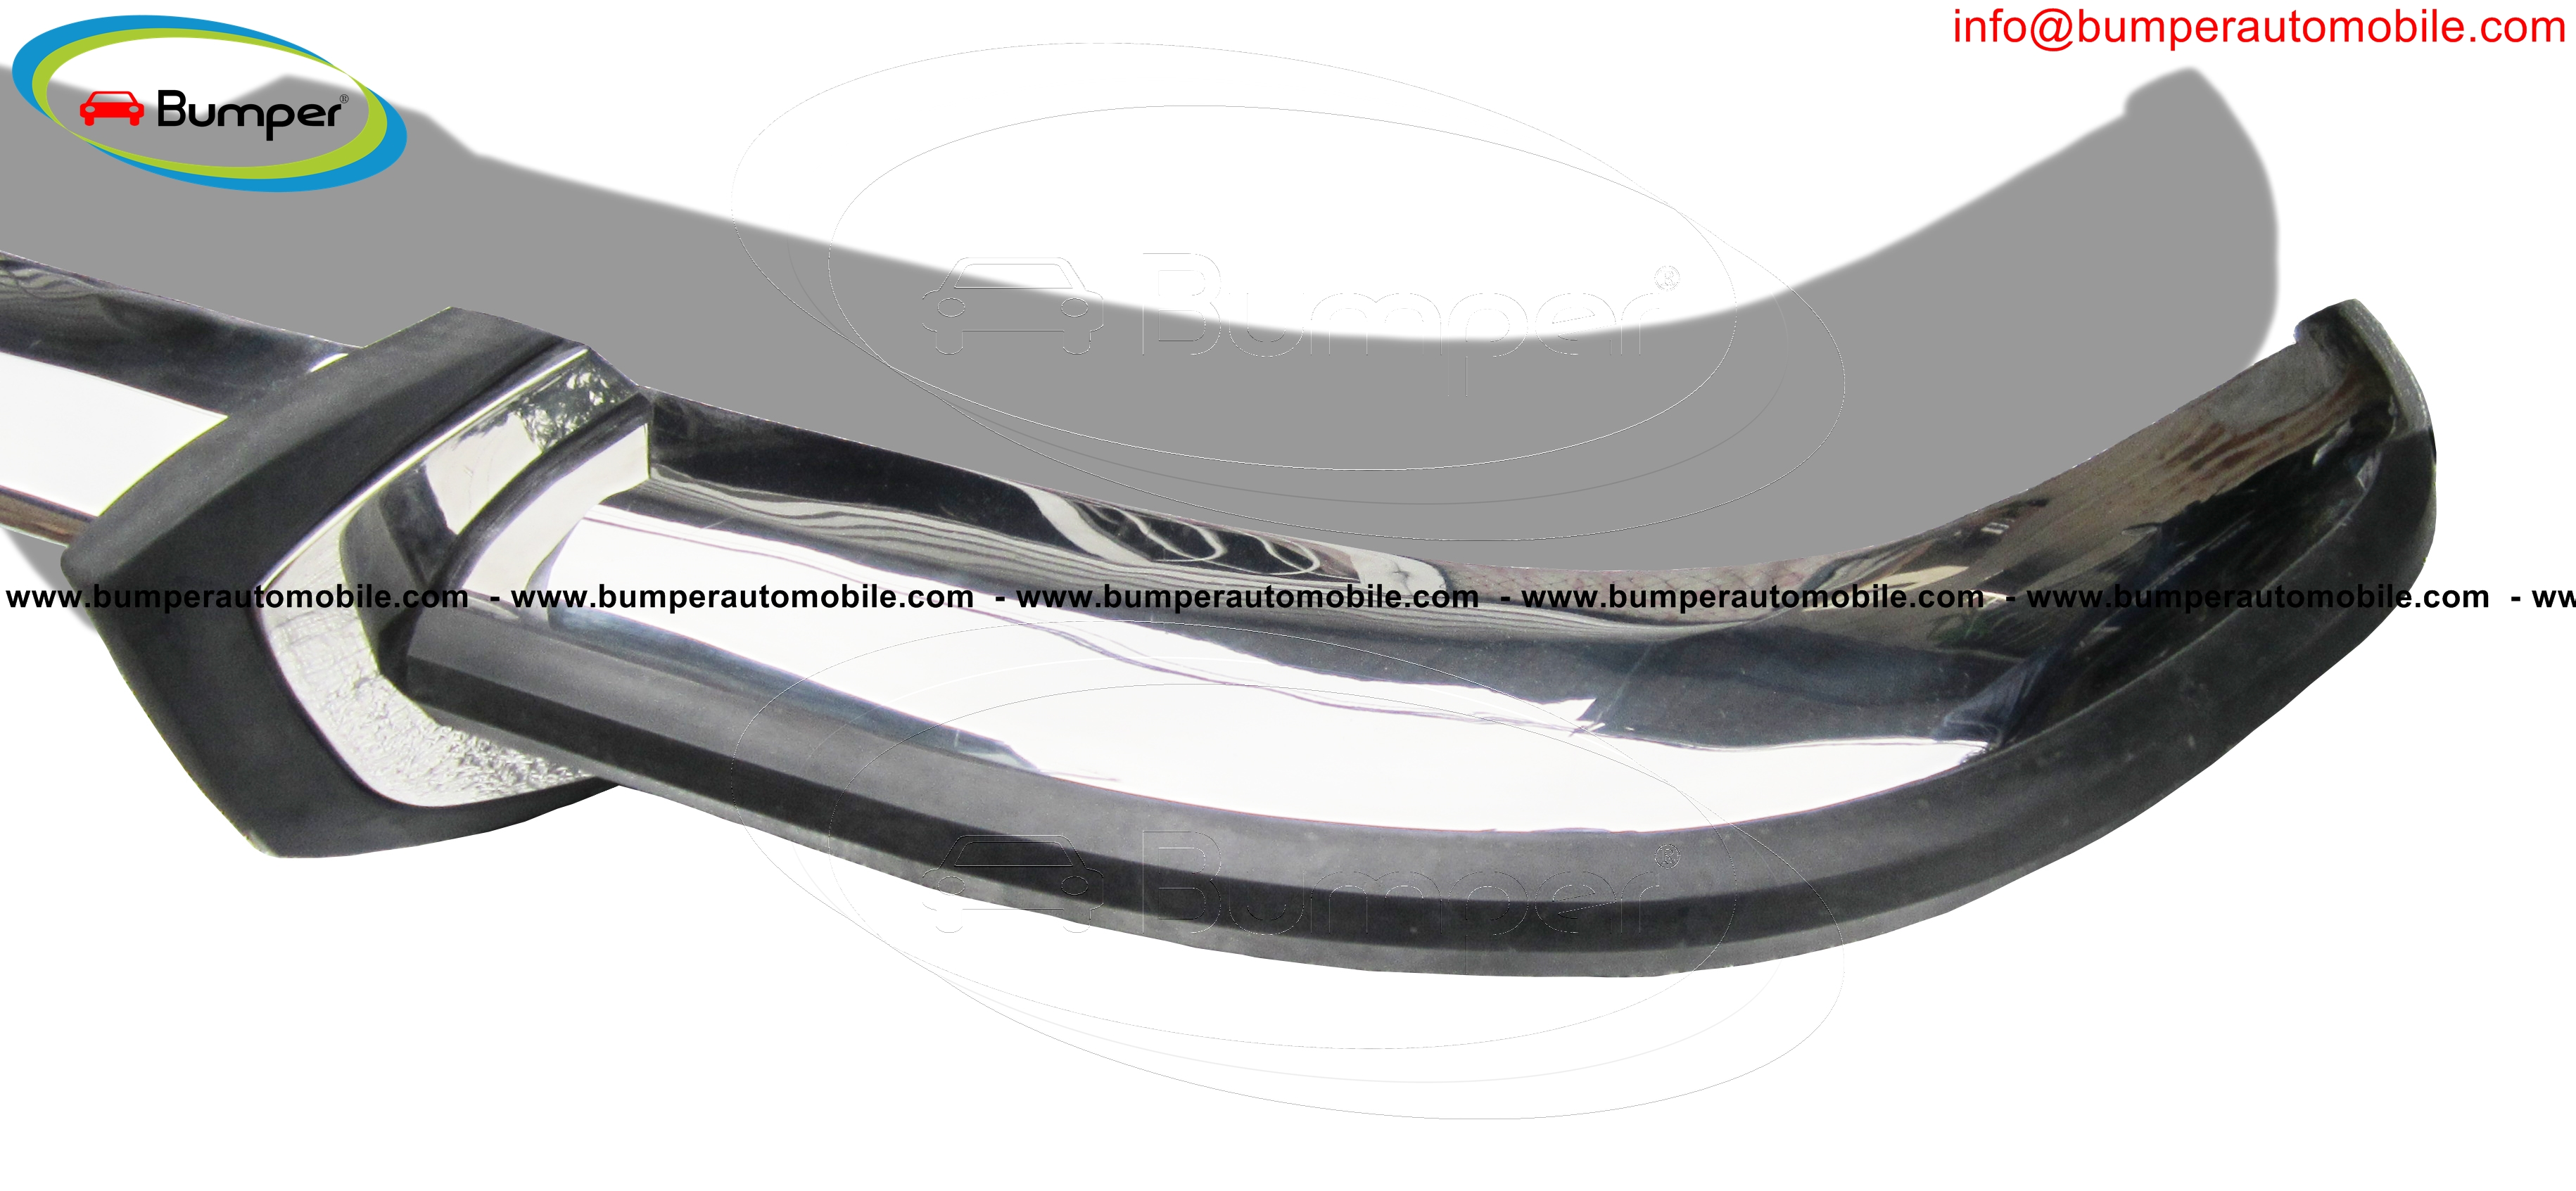 Stainless steel front bumper BMW 2000 Sedan (1965-1969)